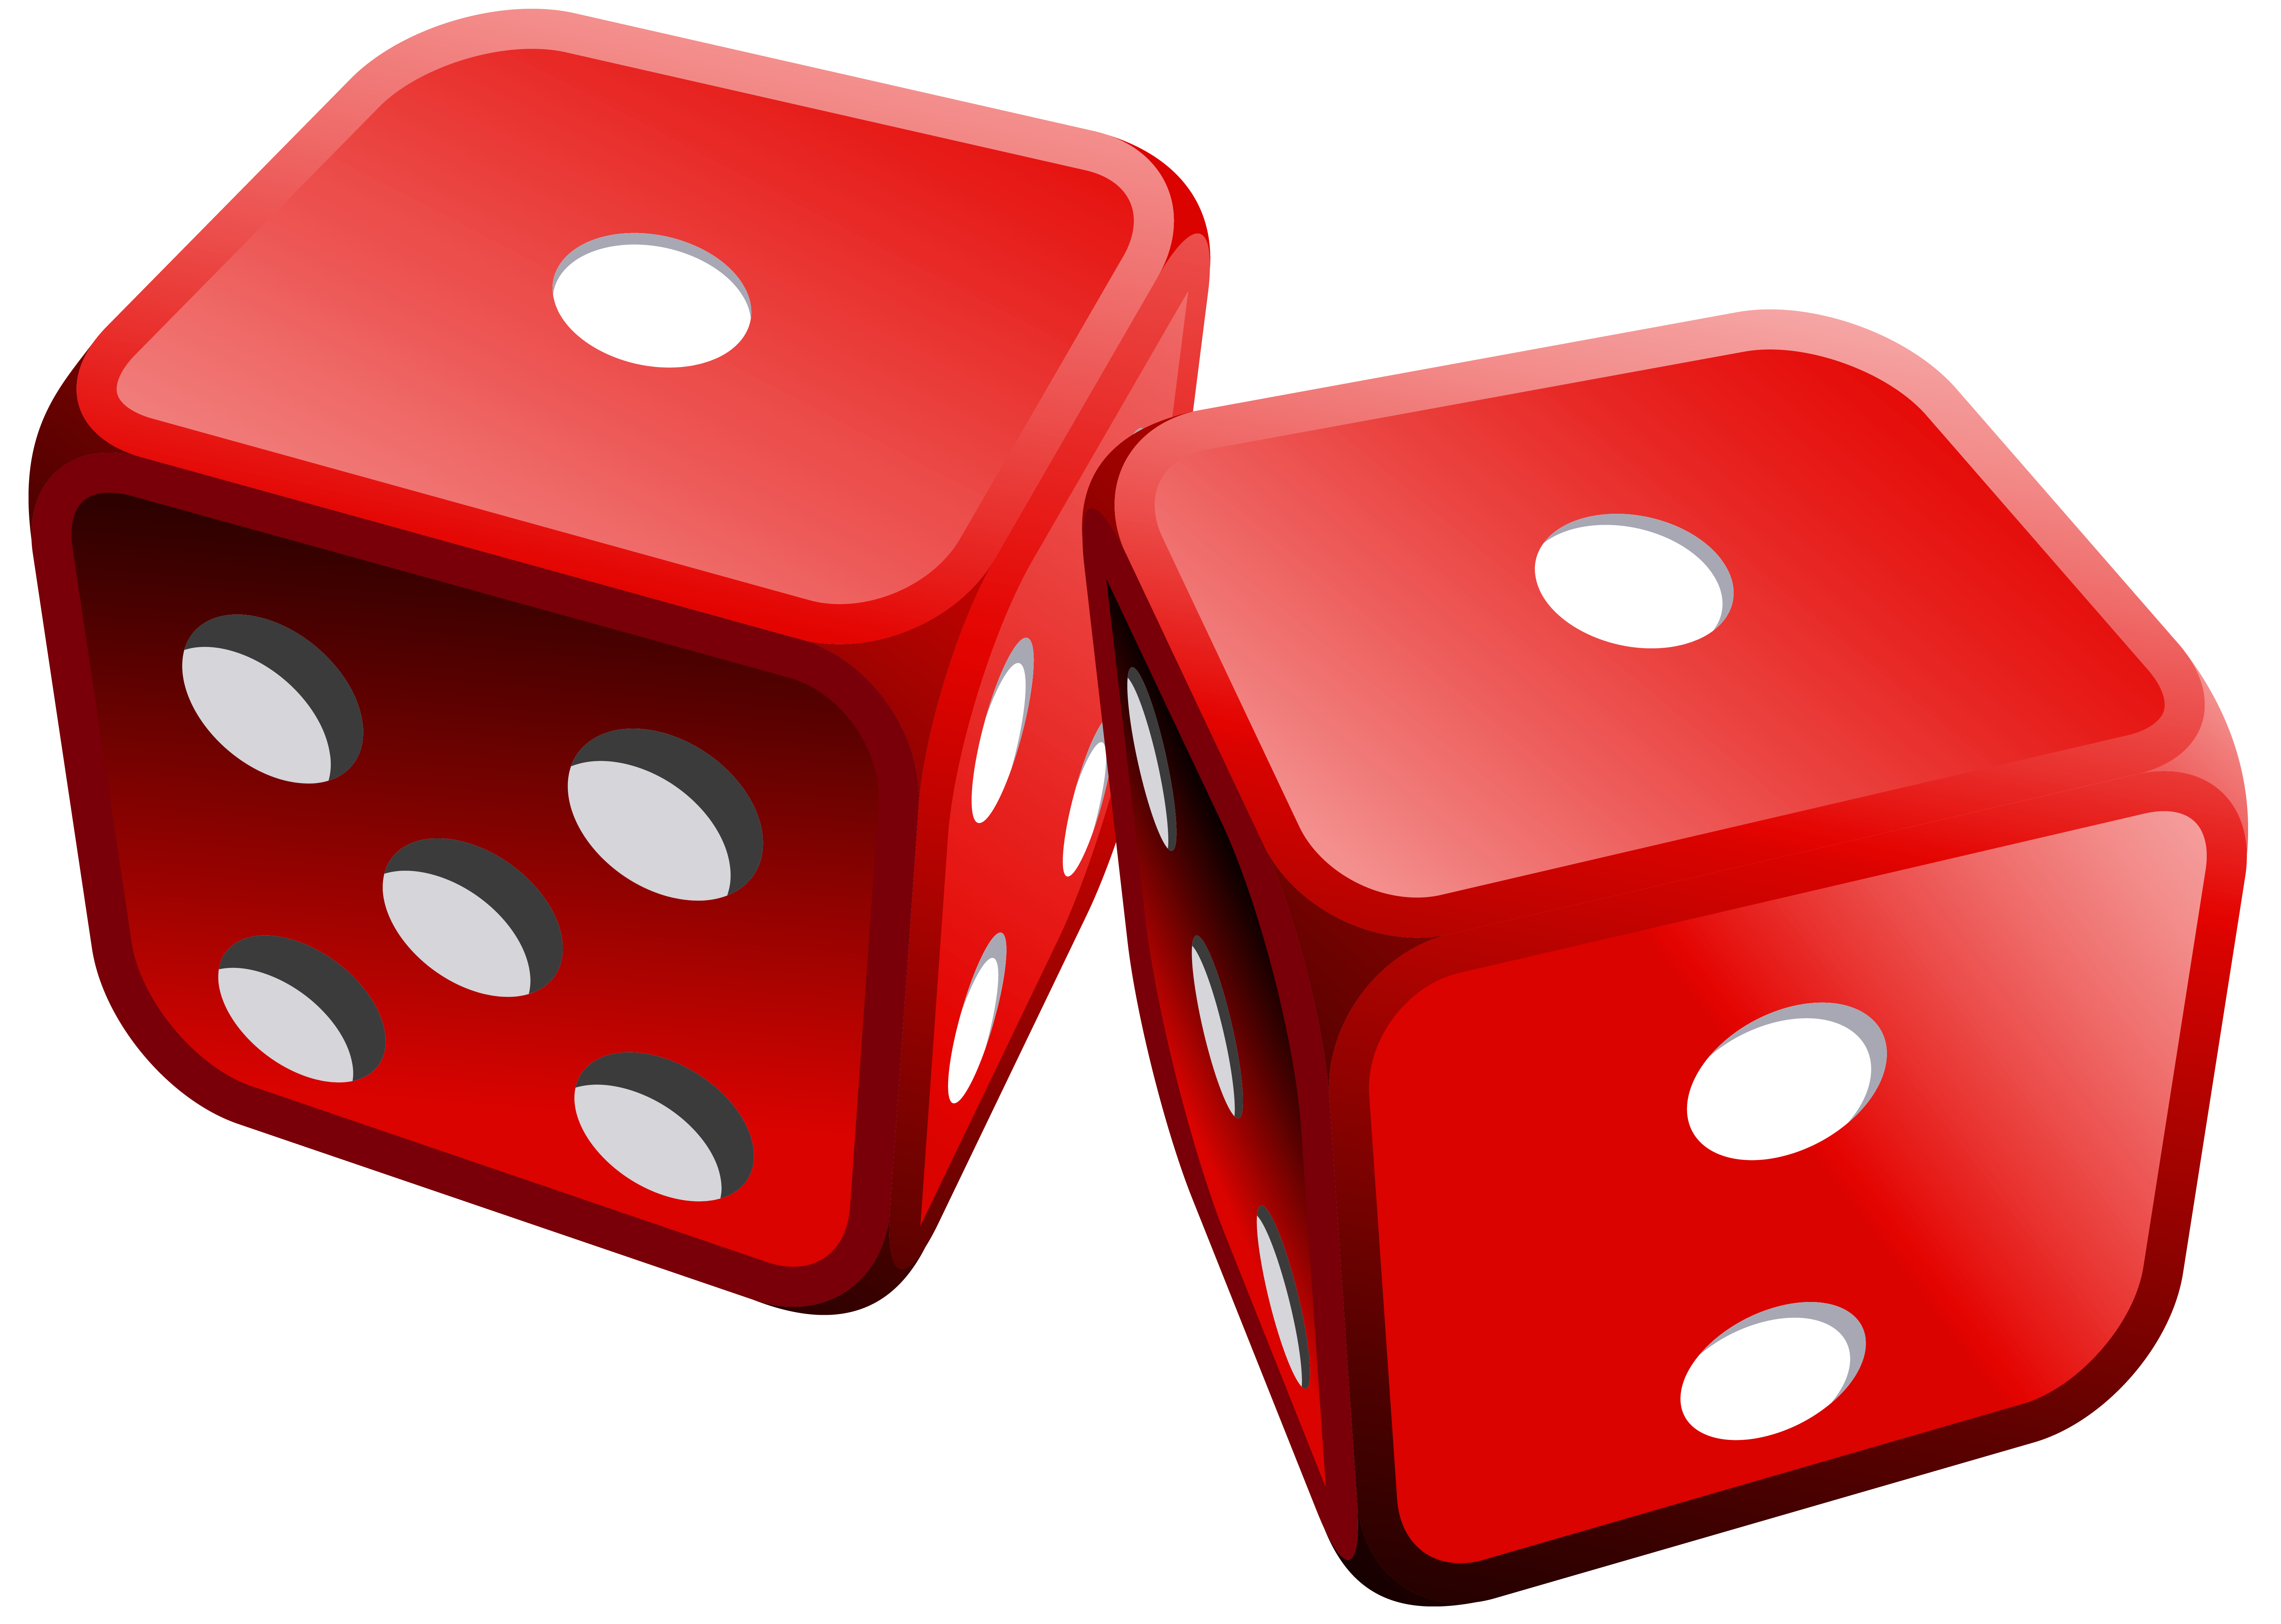 Game clipart transparent. Red dices png best